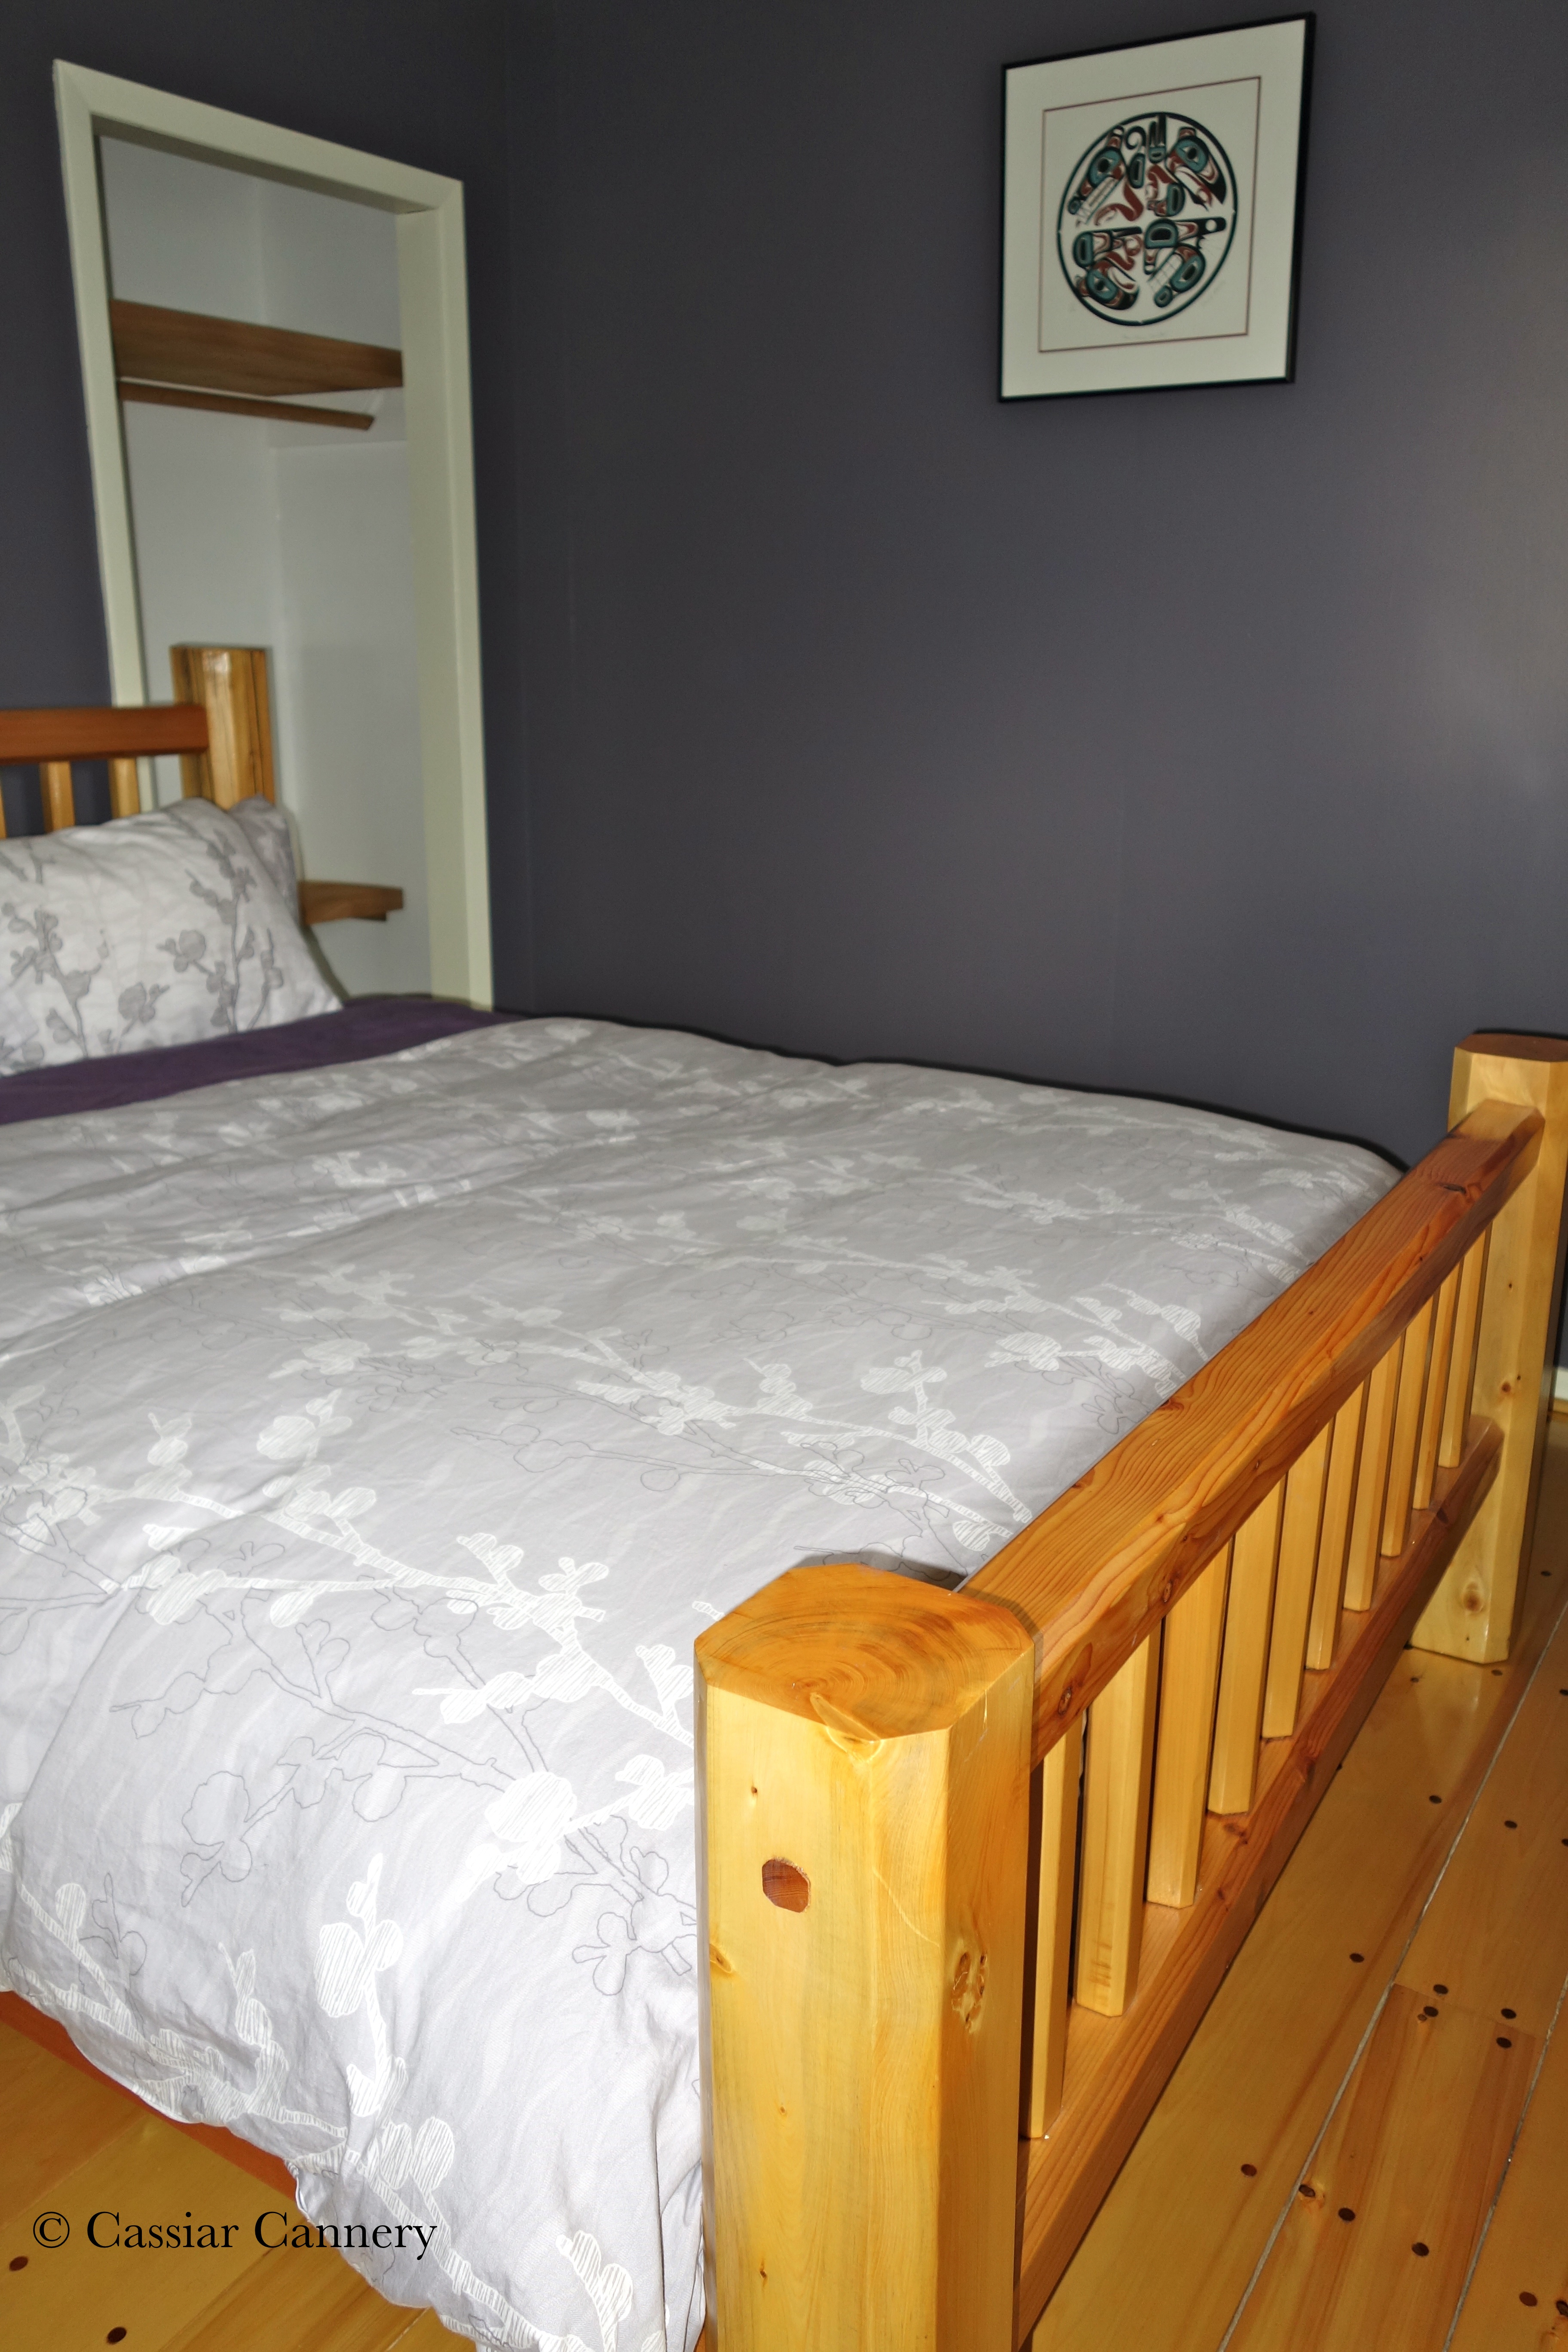 Cassiar Cannery - Steelhead House - reclaimed cedar queen bed in the front room with luxury bedding